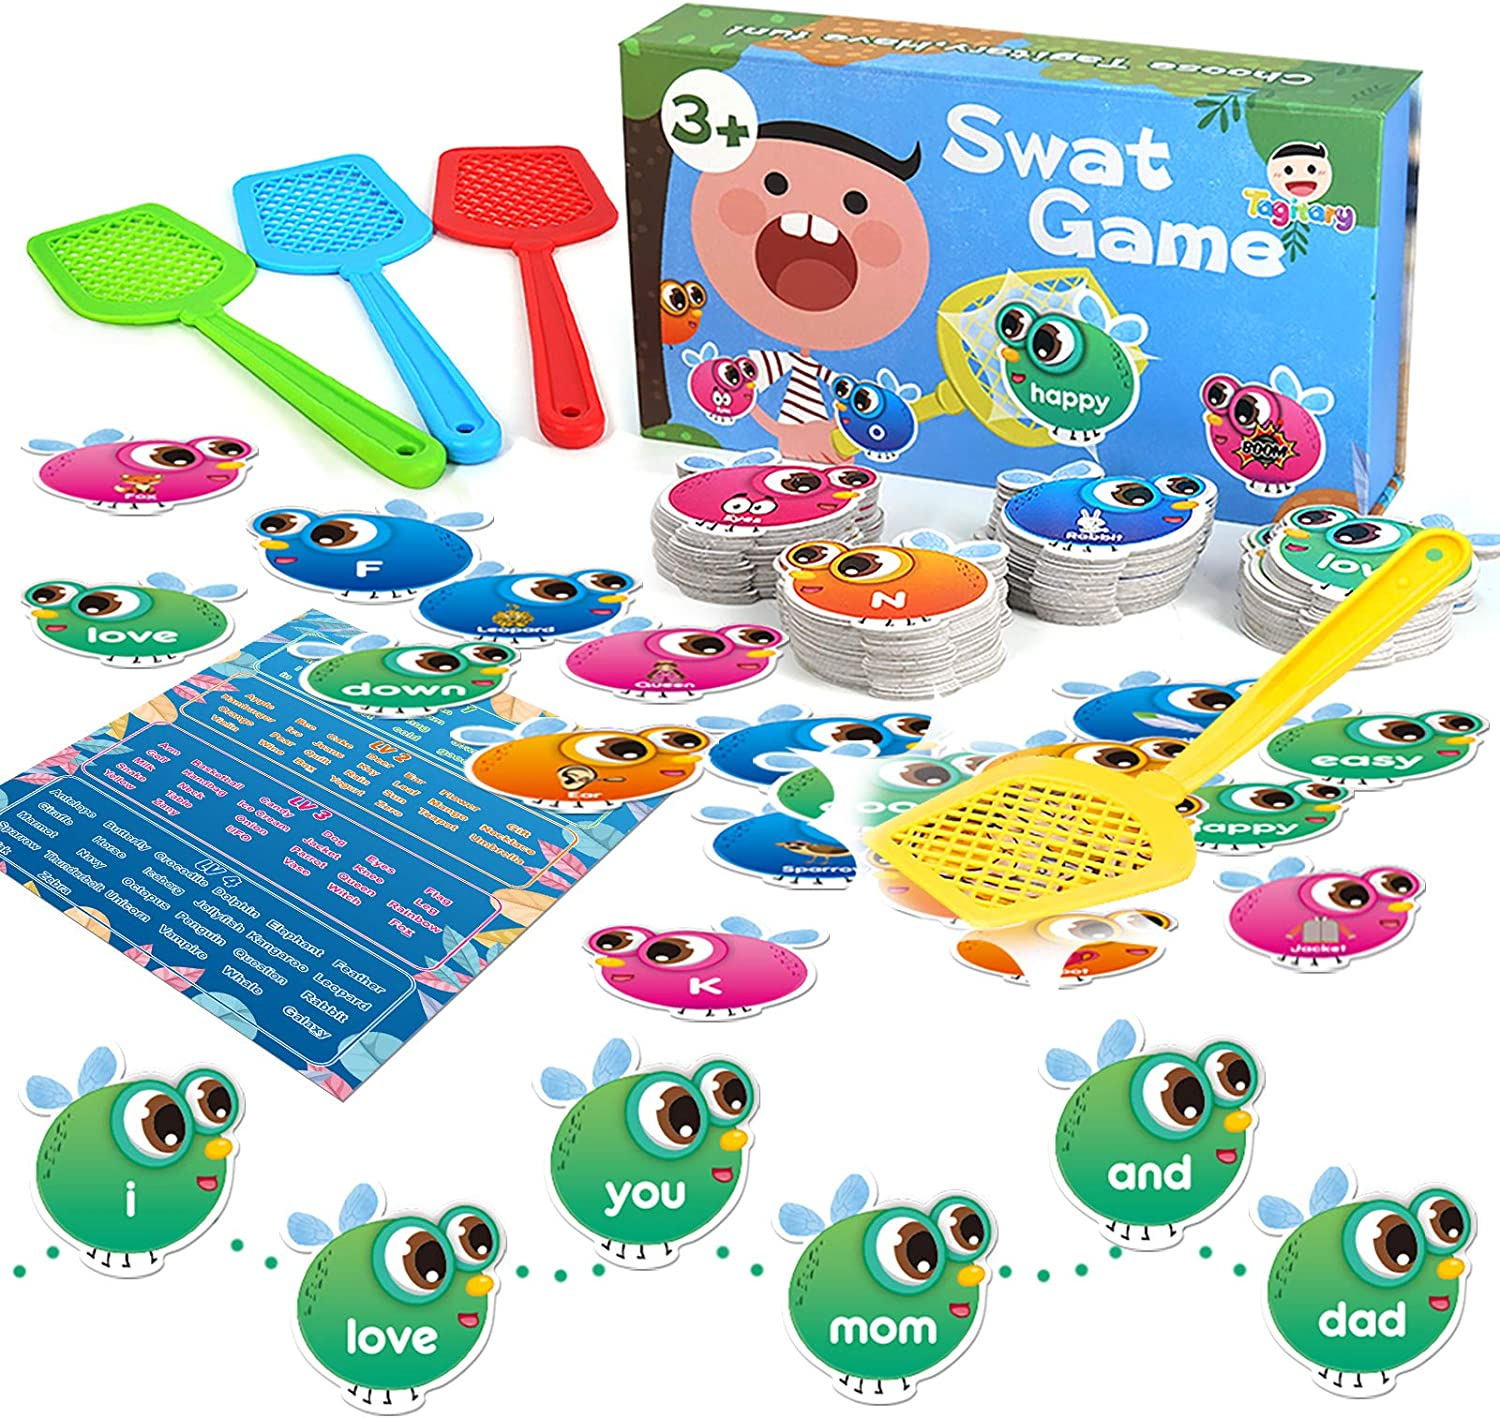 Sight Words Game for Kids Learning Educational Alphabet Toy Cards Game for Age 3,4,5,6,7 Children Visual, Tactile and Auditory Learning Toys for Boys Girls.(122Pcs)